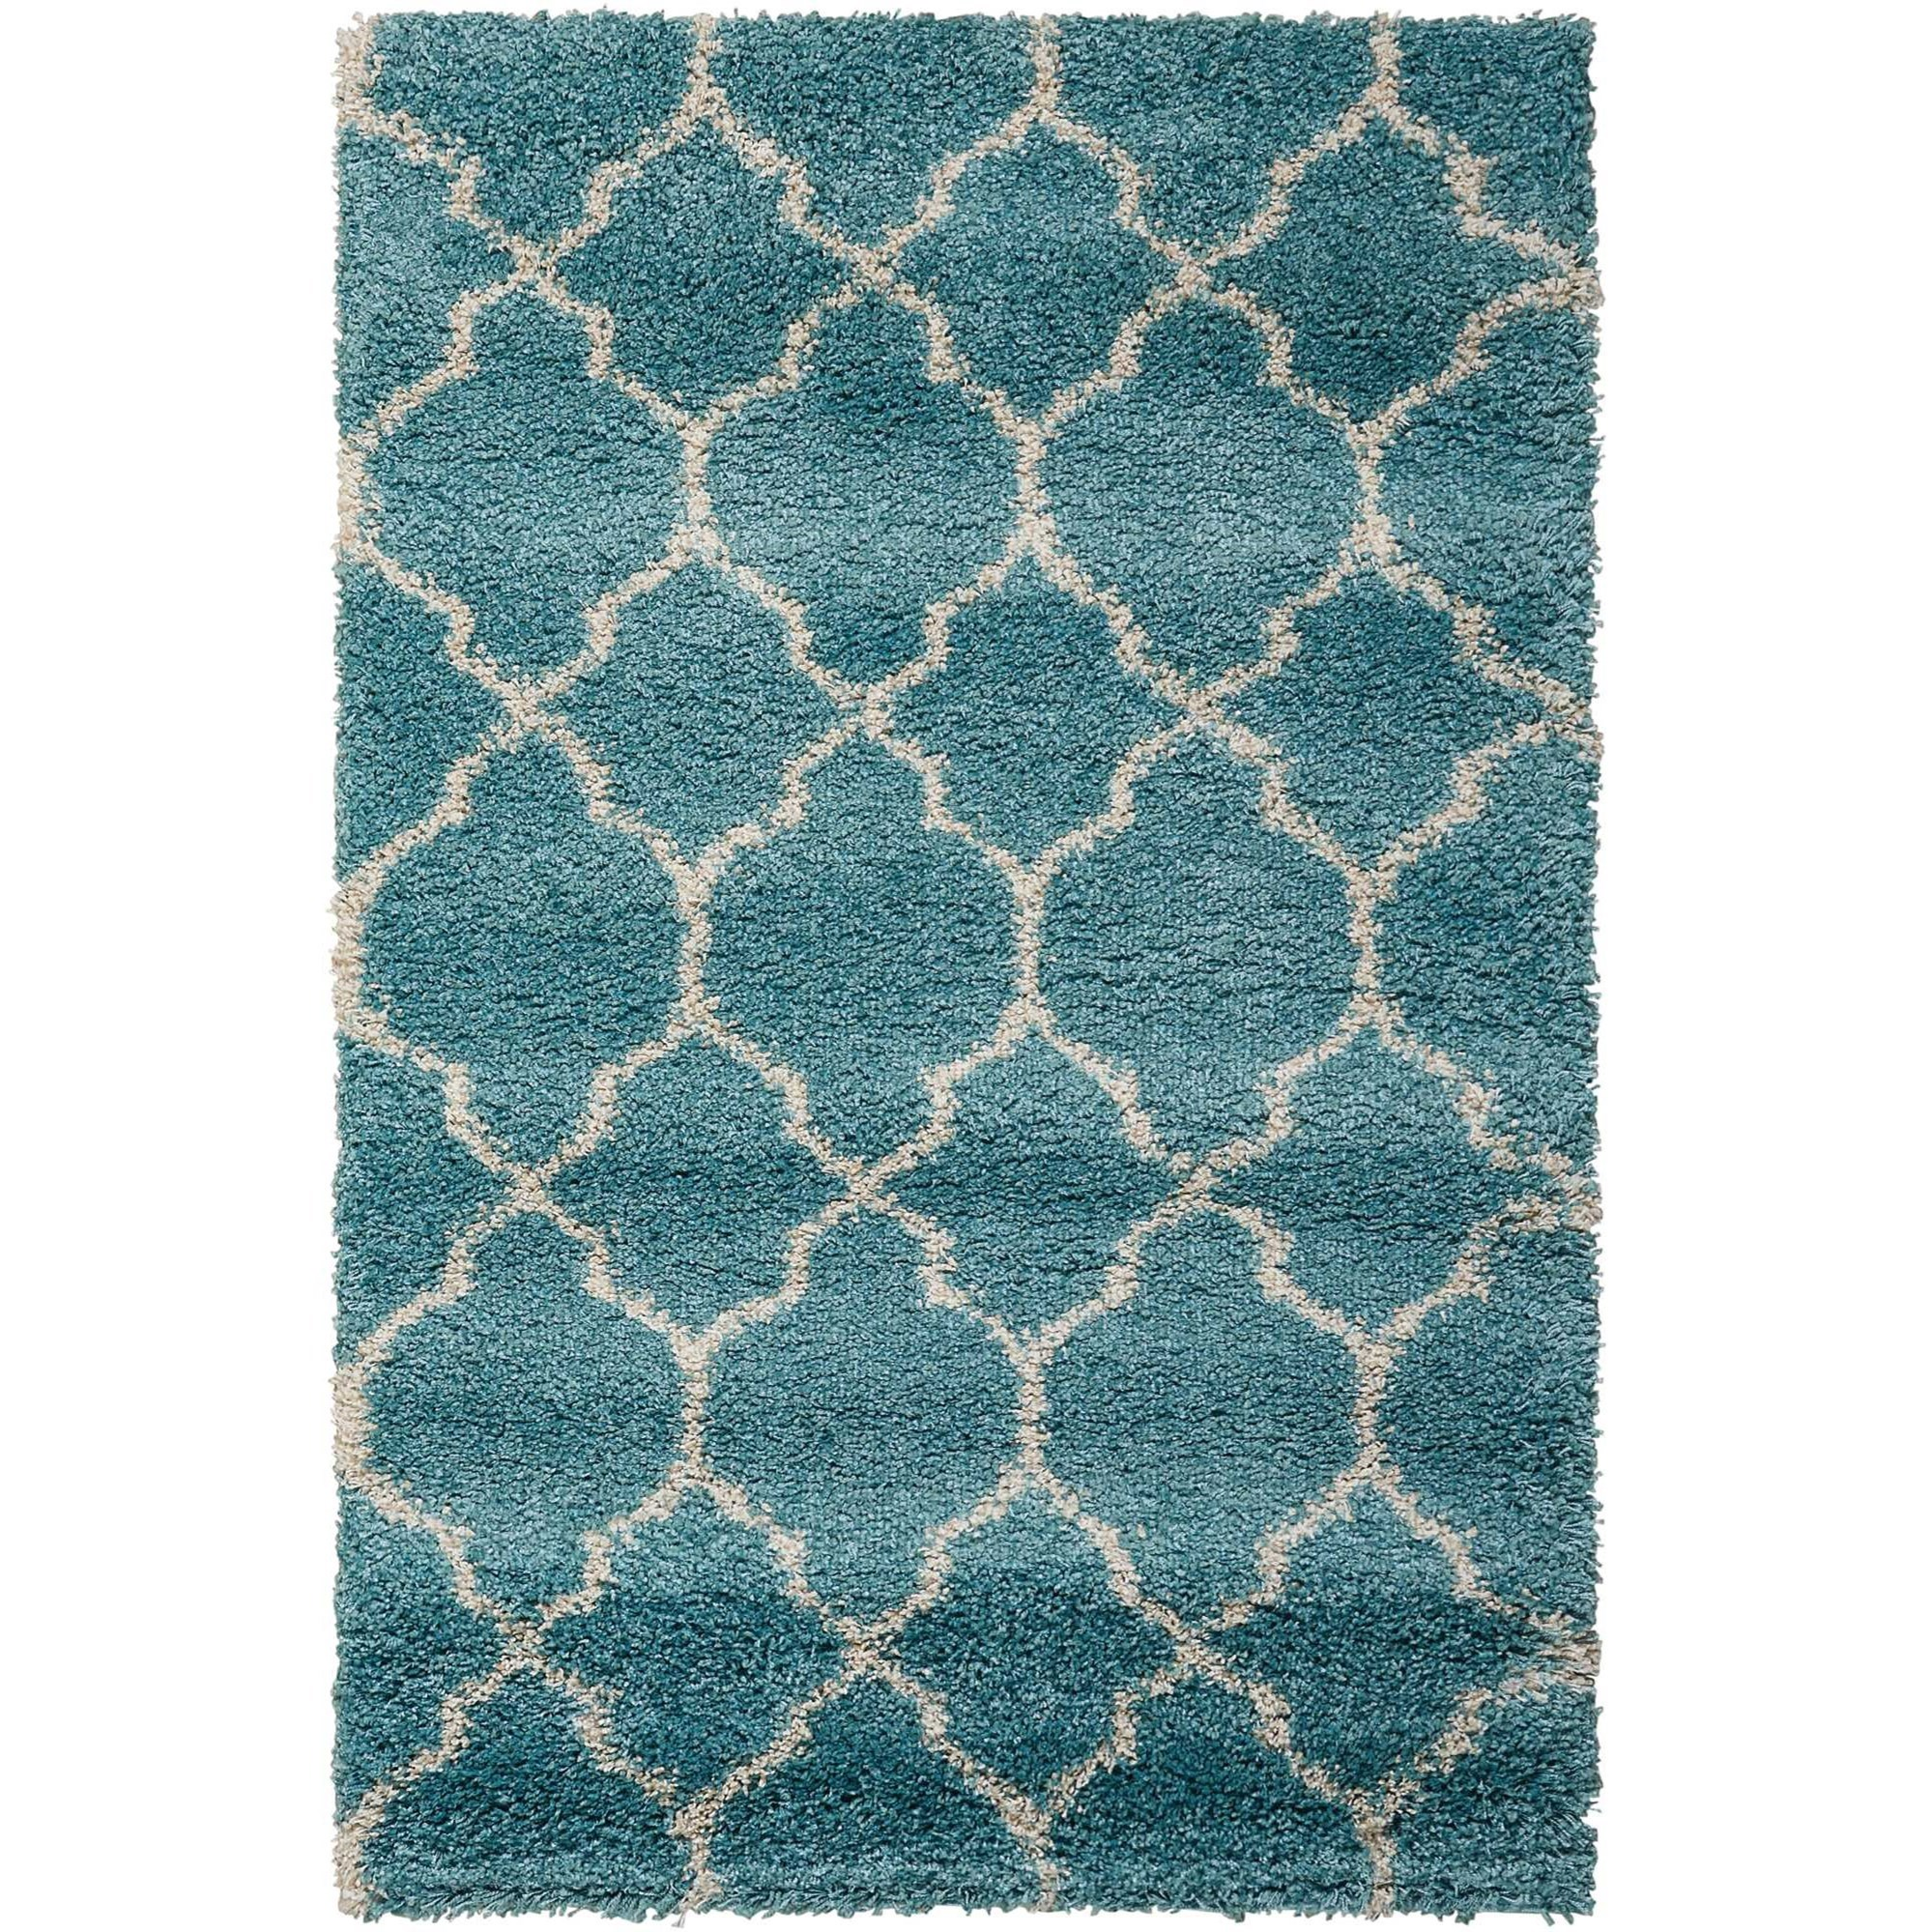 Amore Amore AMOR2 Blue 3'x5' Area Rug by Nourison at Home Collections Furniture